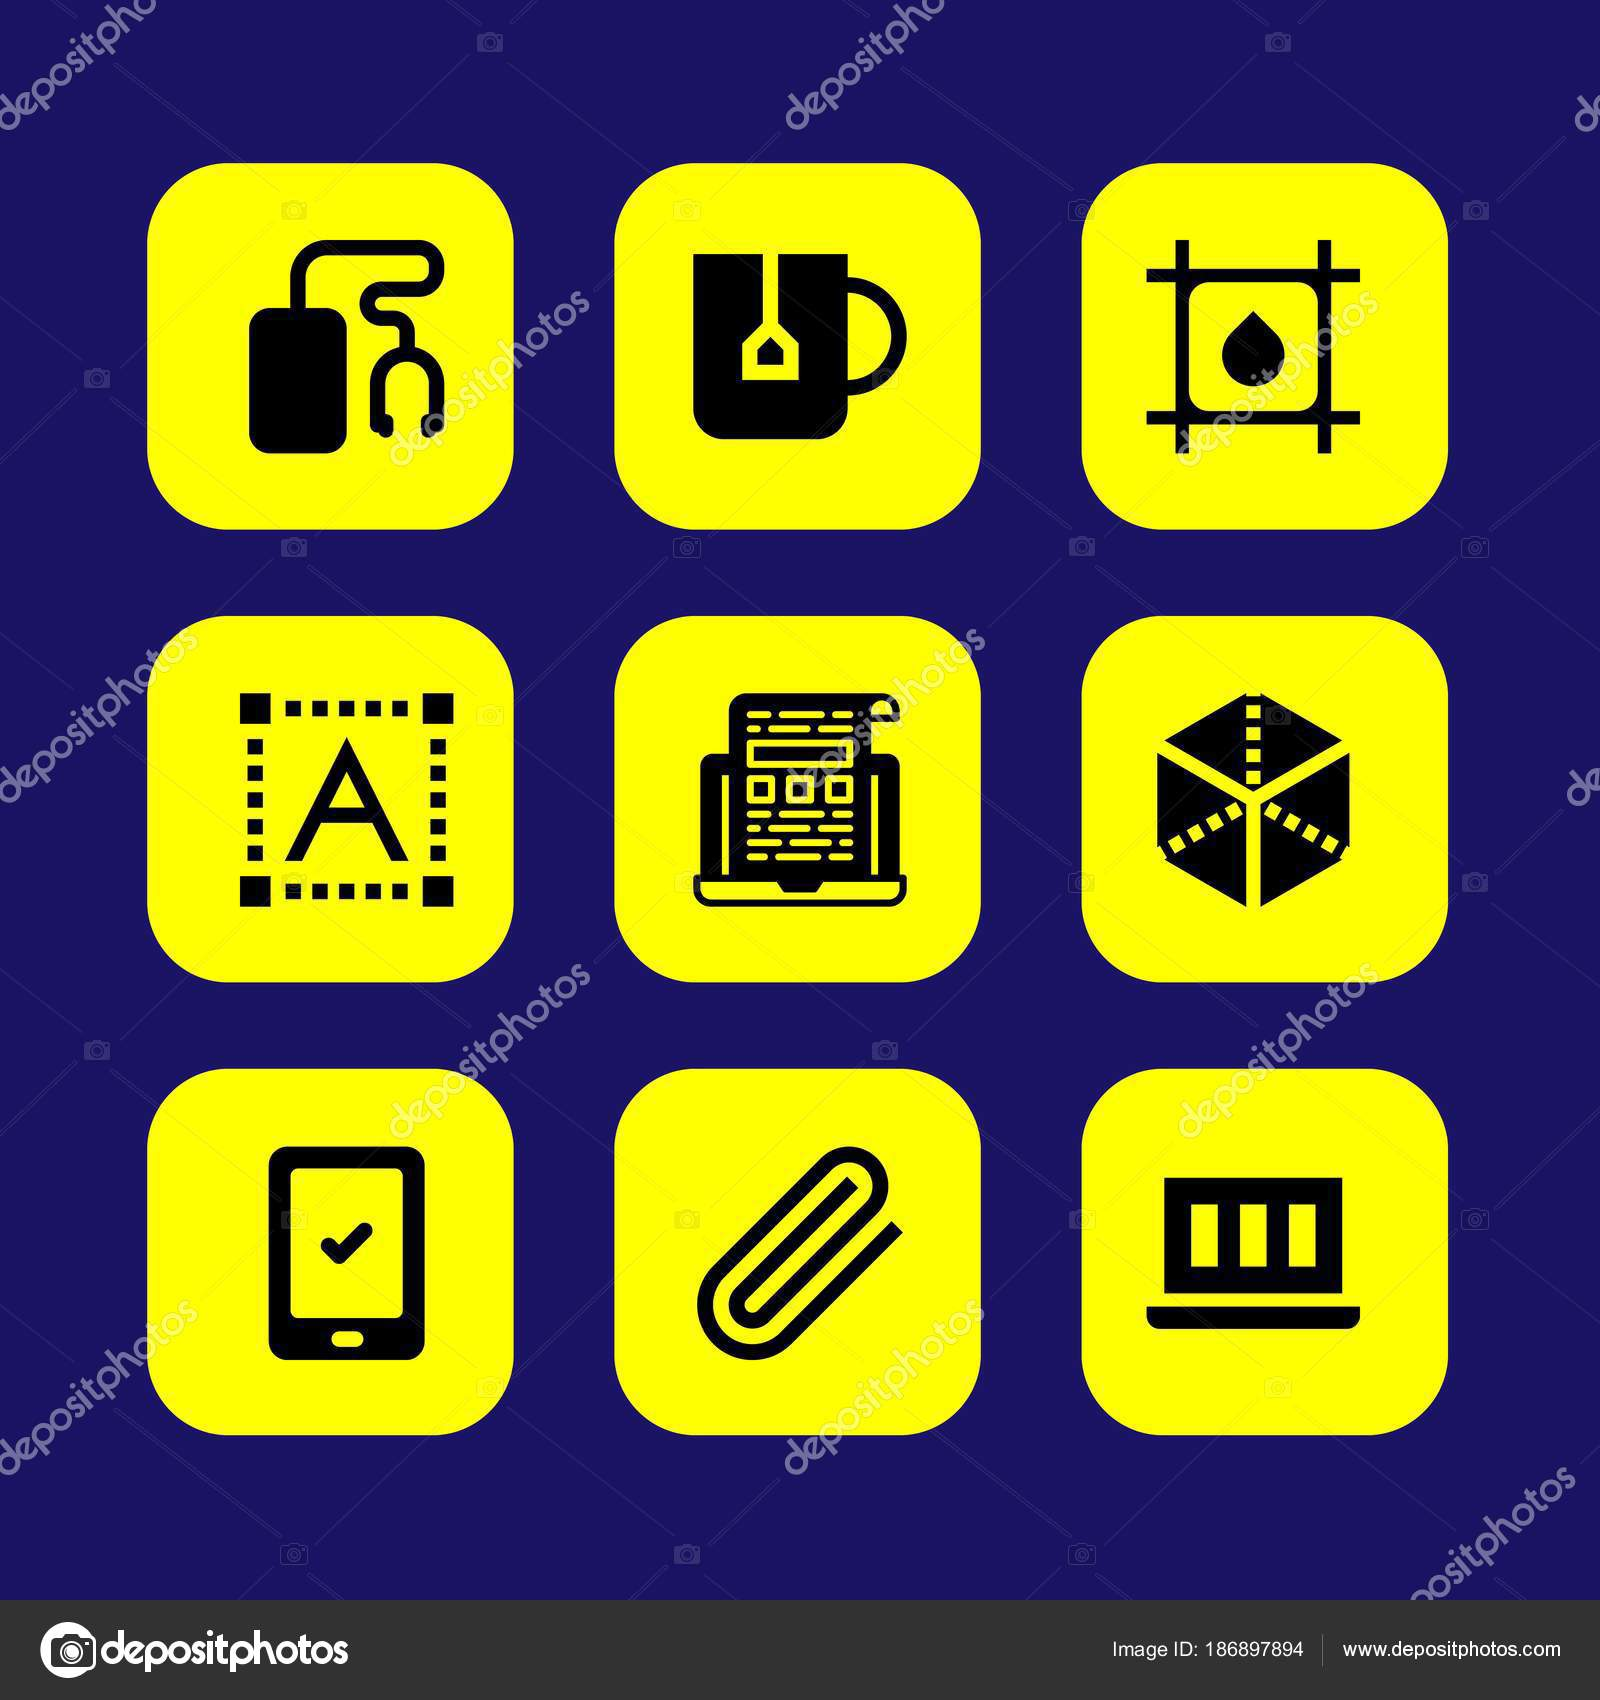 Web Design vector icon set  cube, text editor, music player and